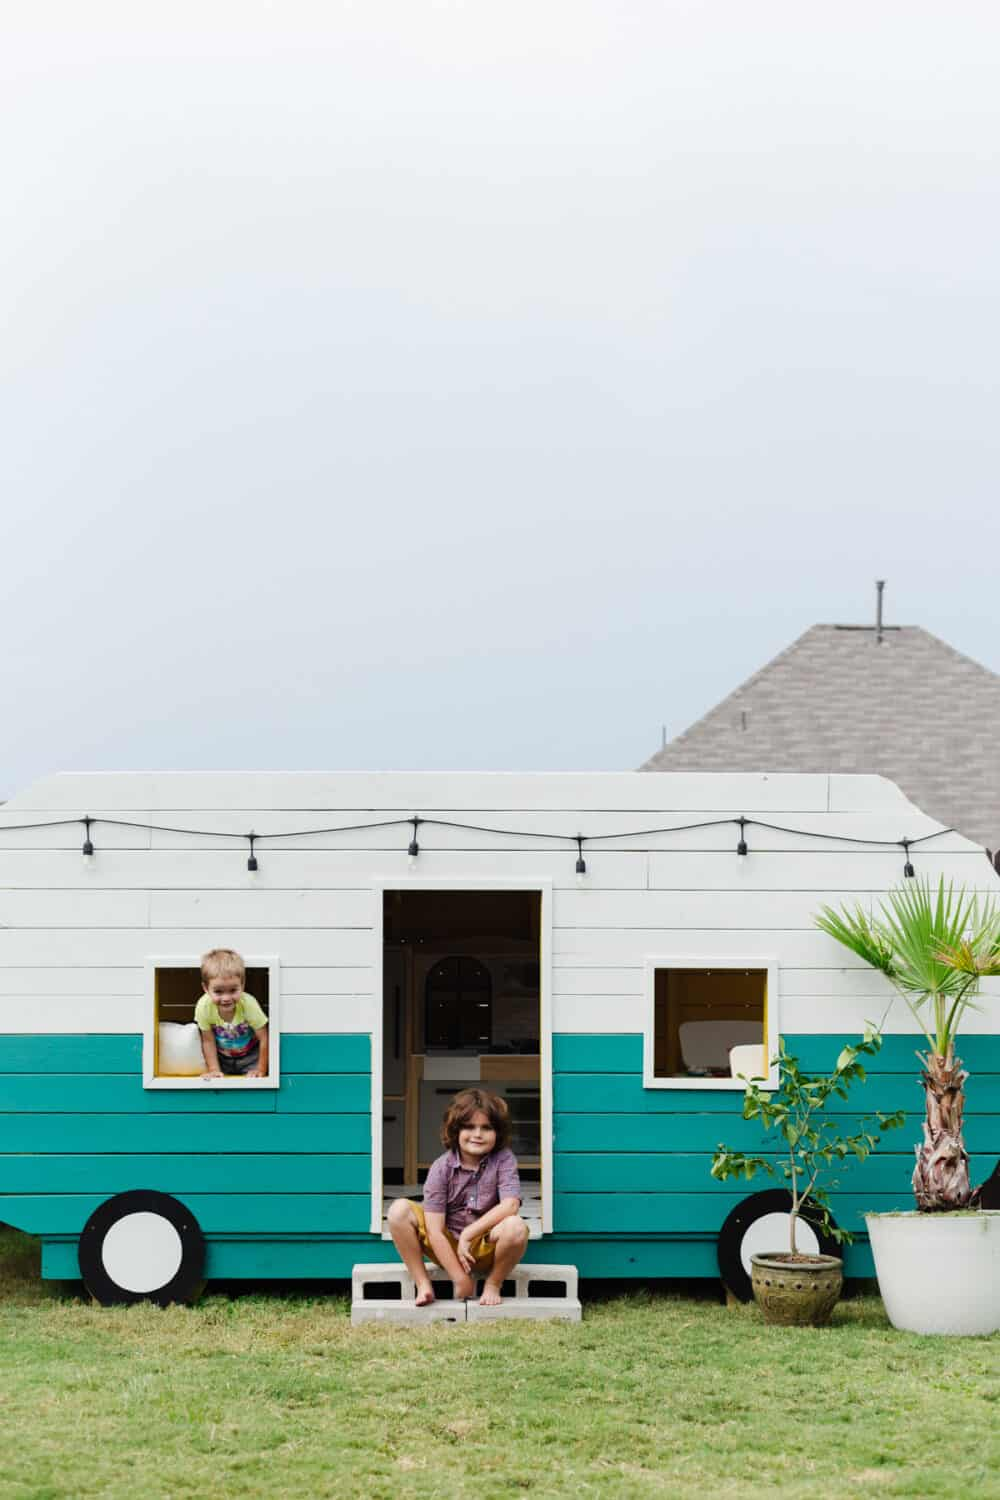 Two young boys posing with a playhouse camper